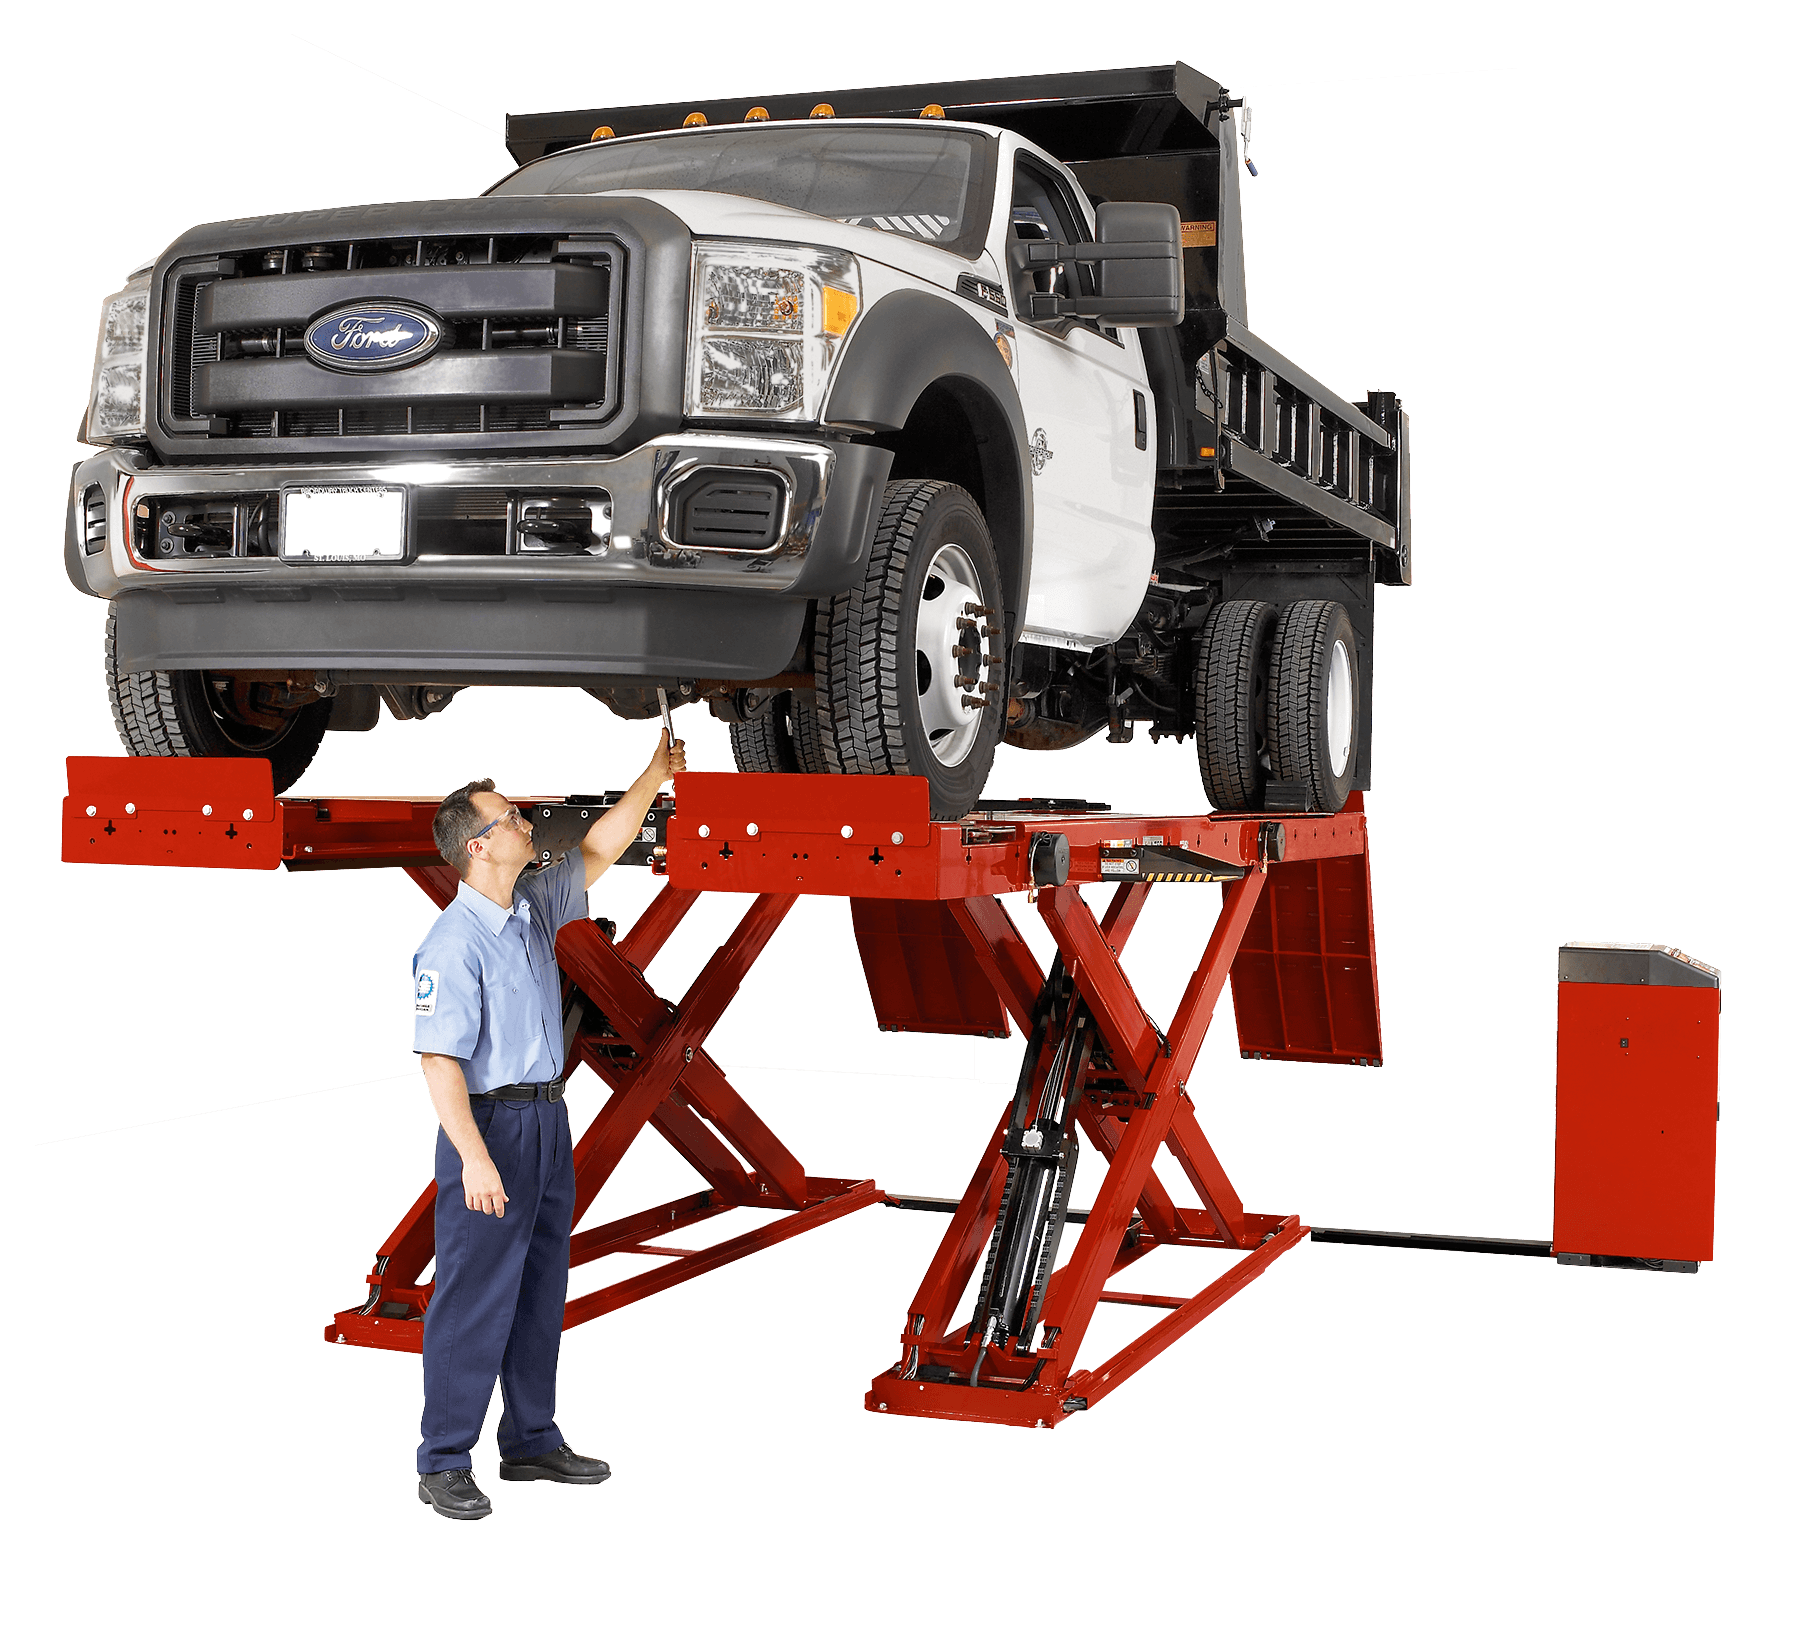 Scissor lift used to inspect under heavy-duty vehicle